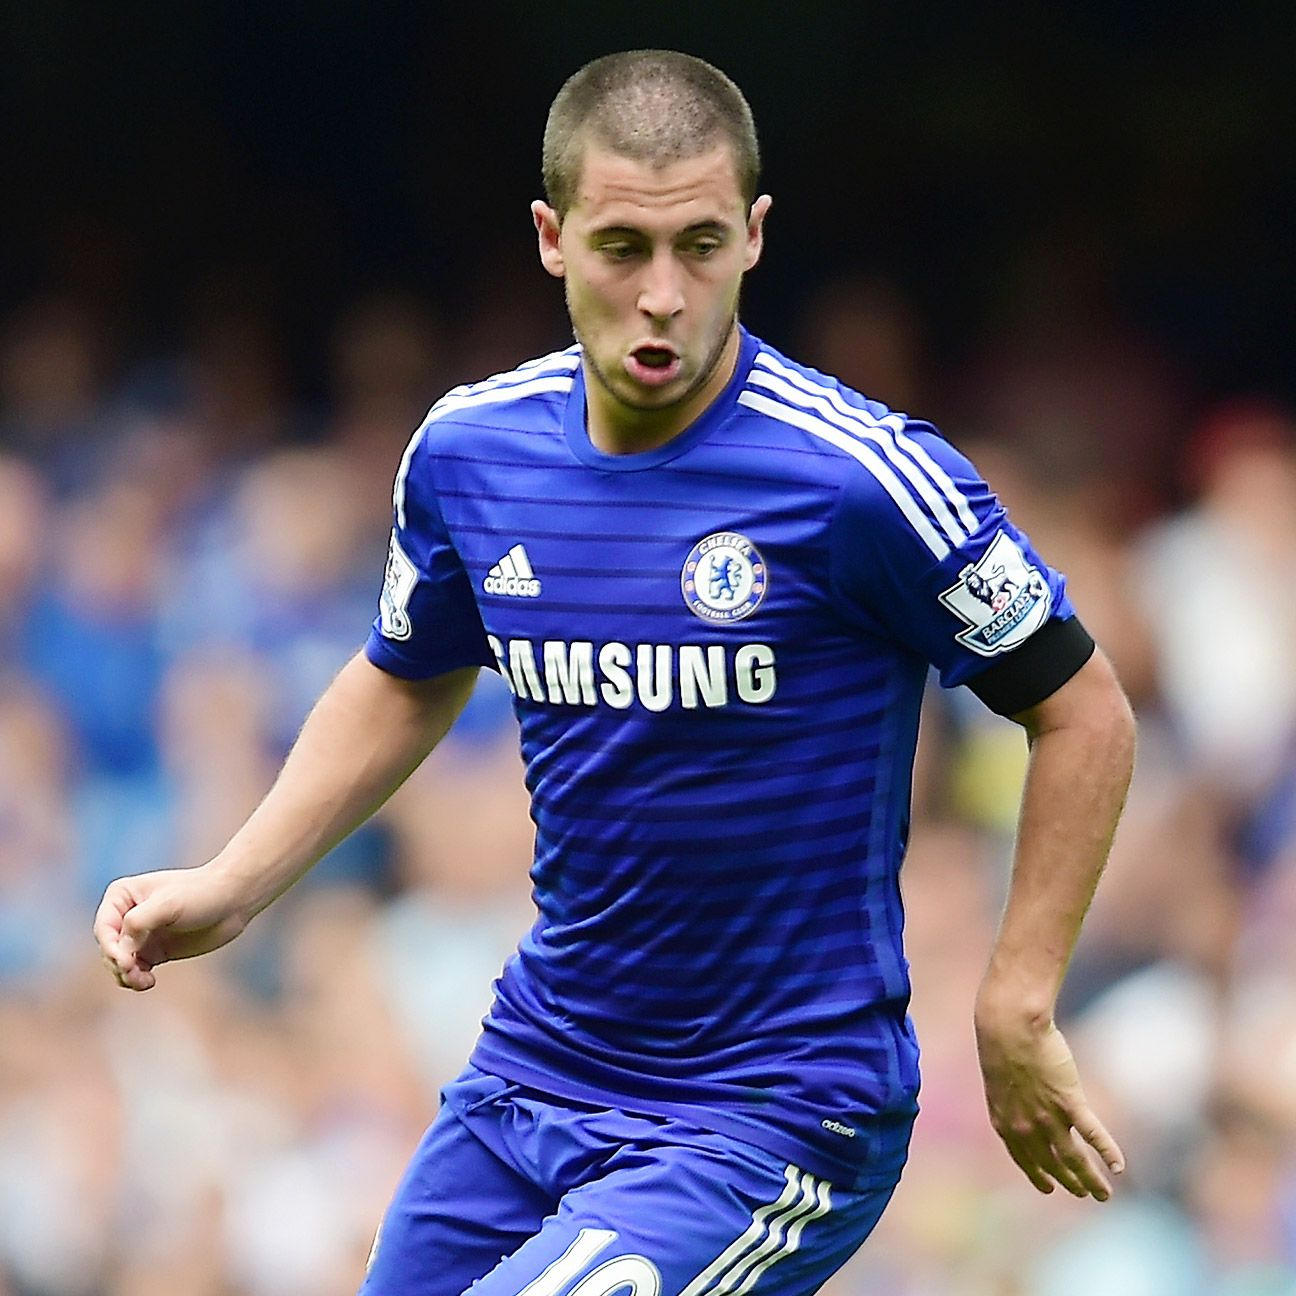 Eden Hazard is one of several Chelsea players recommended to be a fantasy captain.